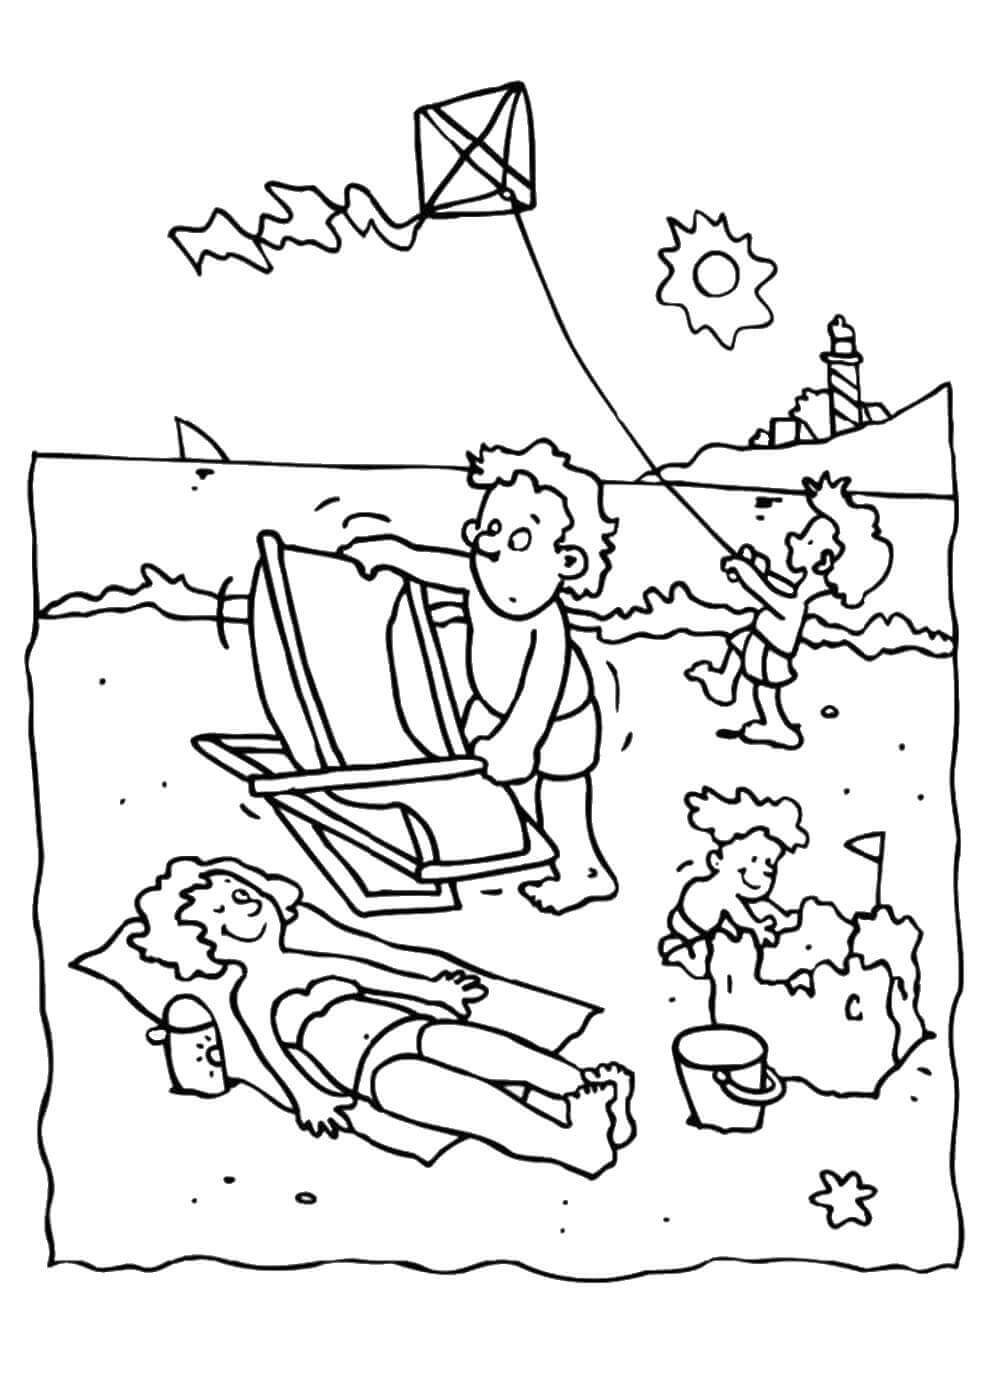 beach coloring pages 25 free printable beach coloring pages scribblefun coloring pages beach 1 1